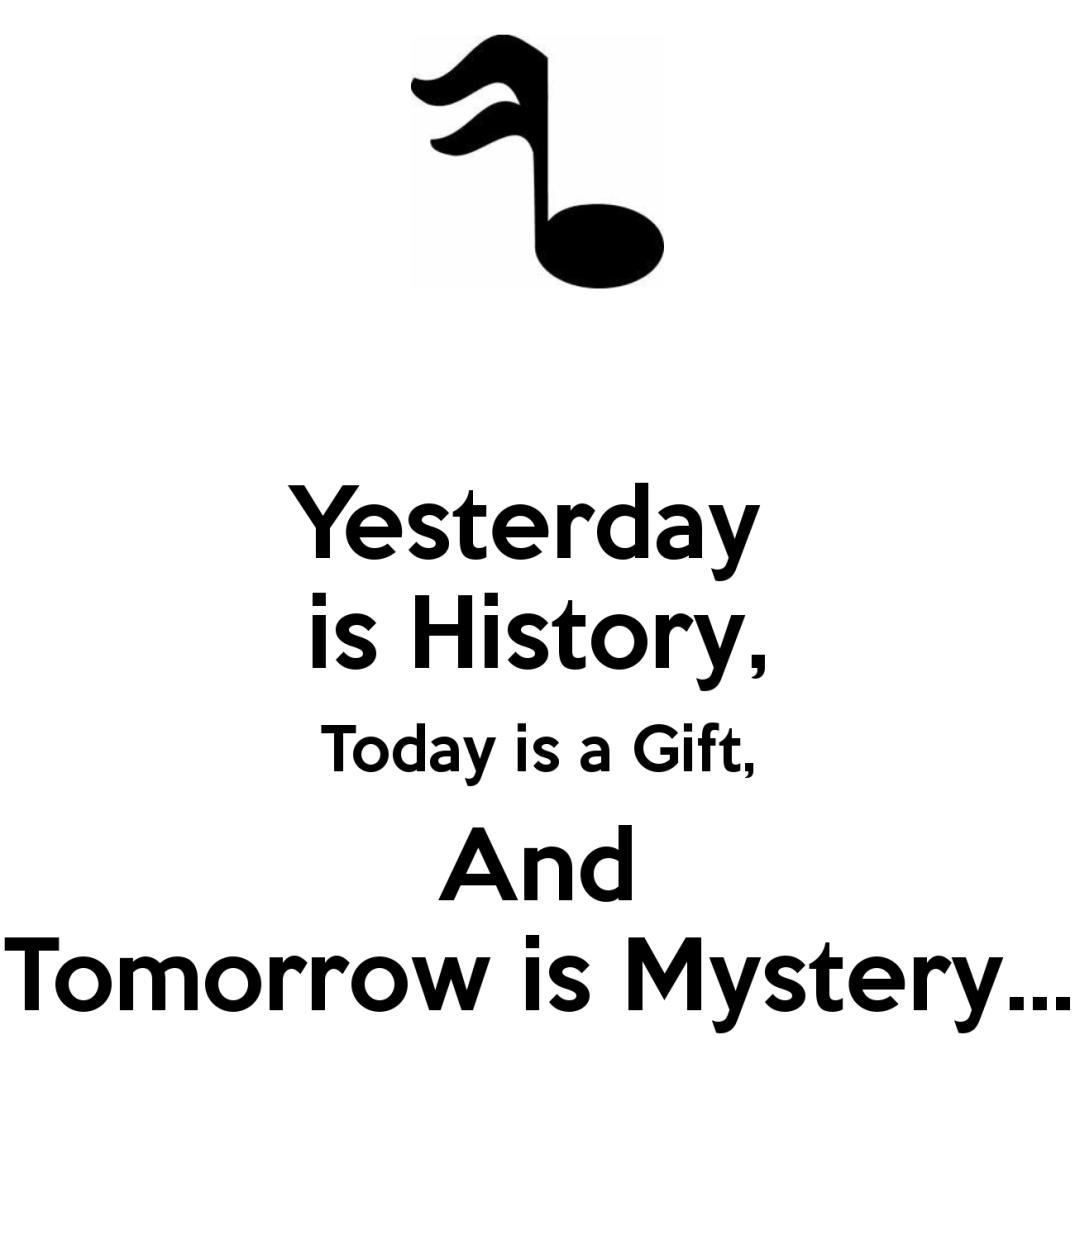 yesterday-is-history-today-is-a-gift-and-tomorrow-is-mystery